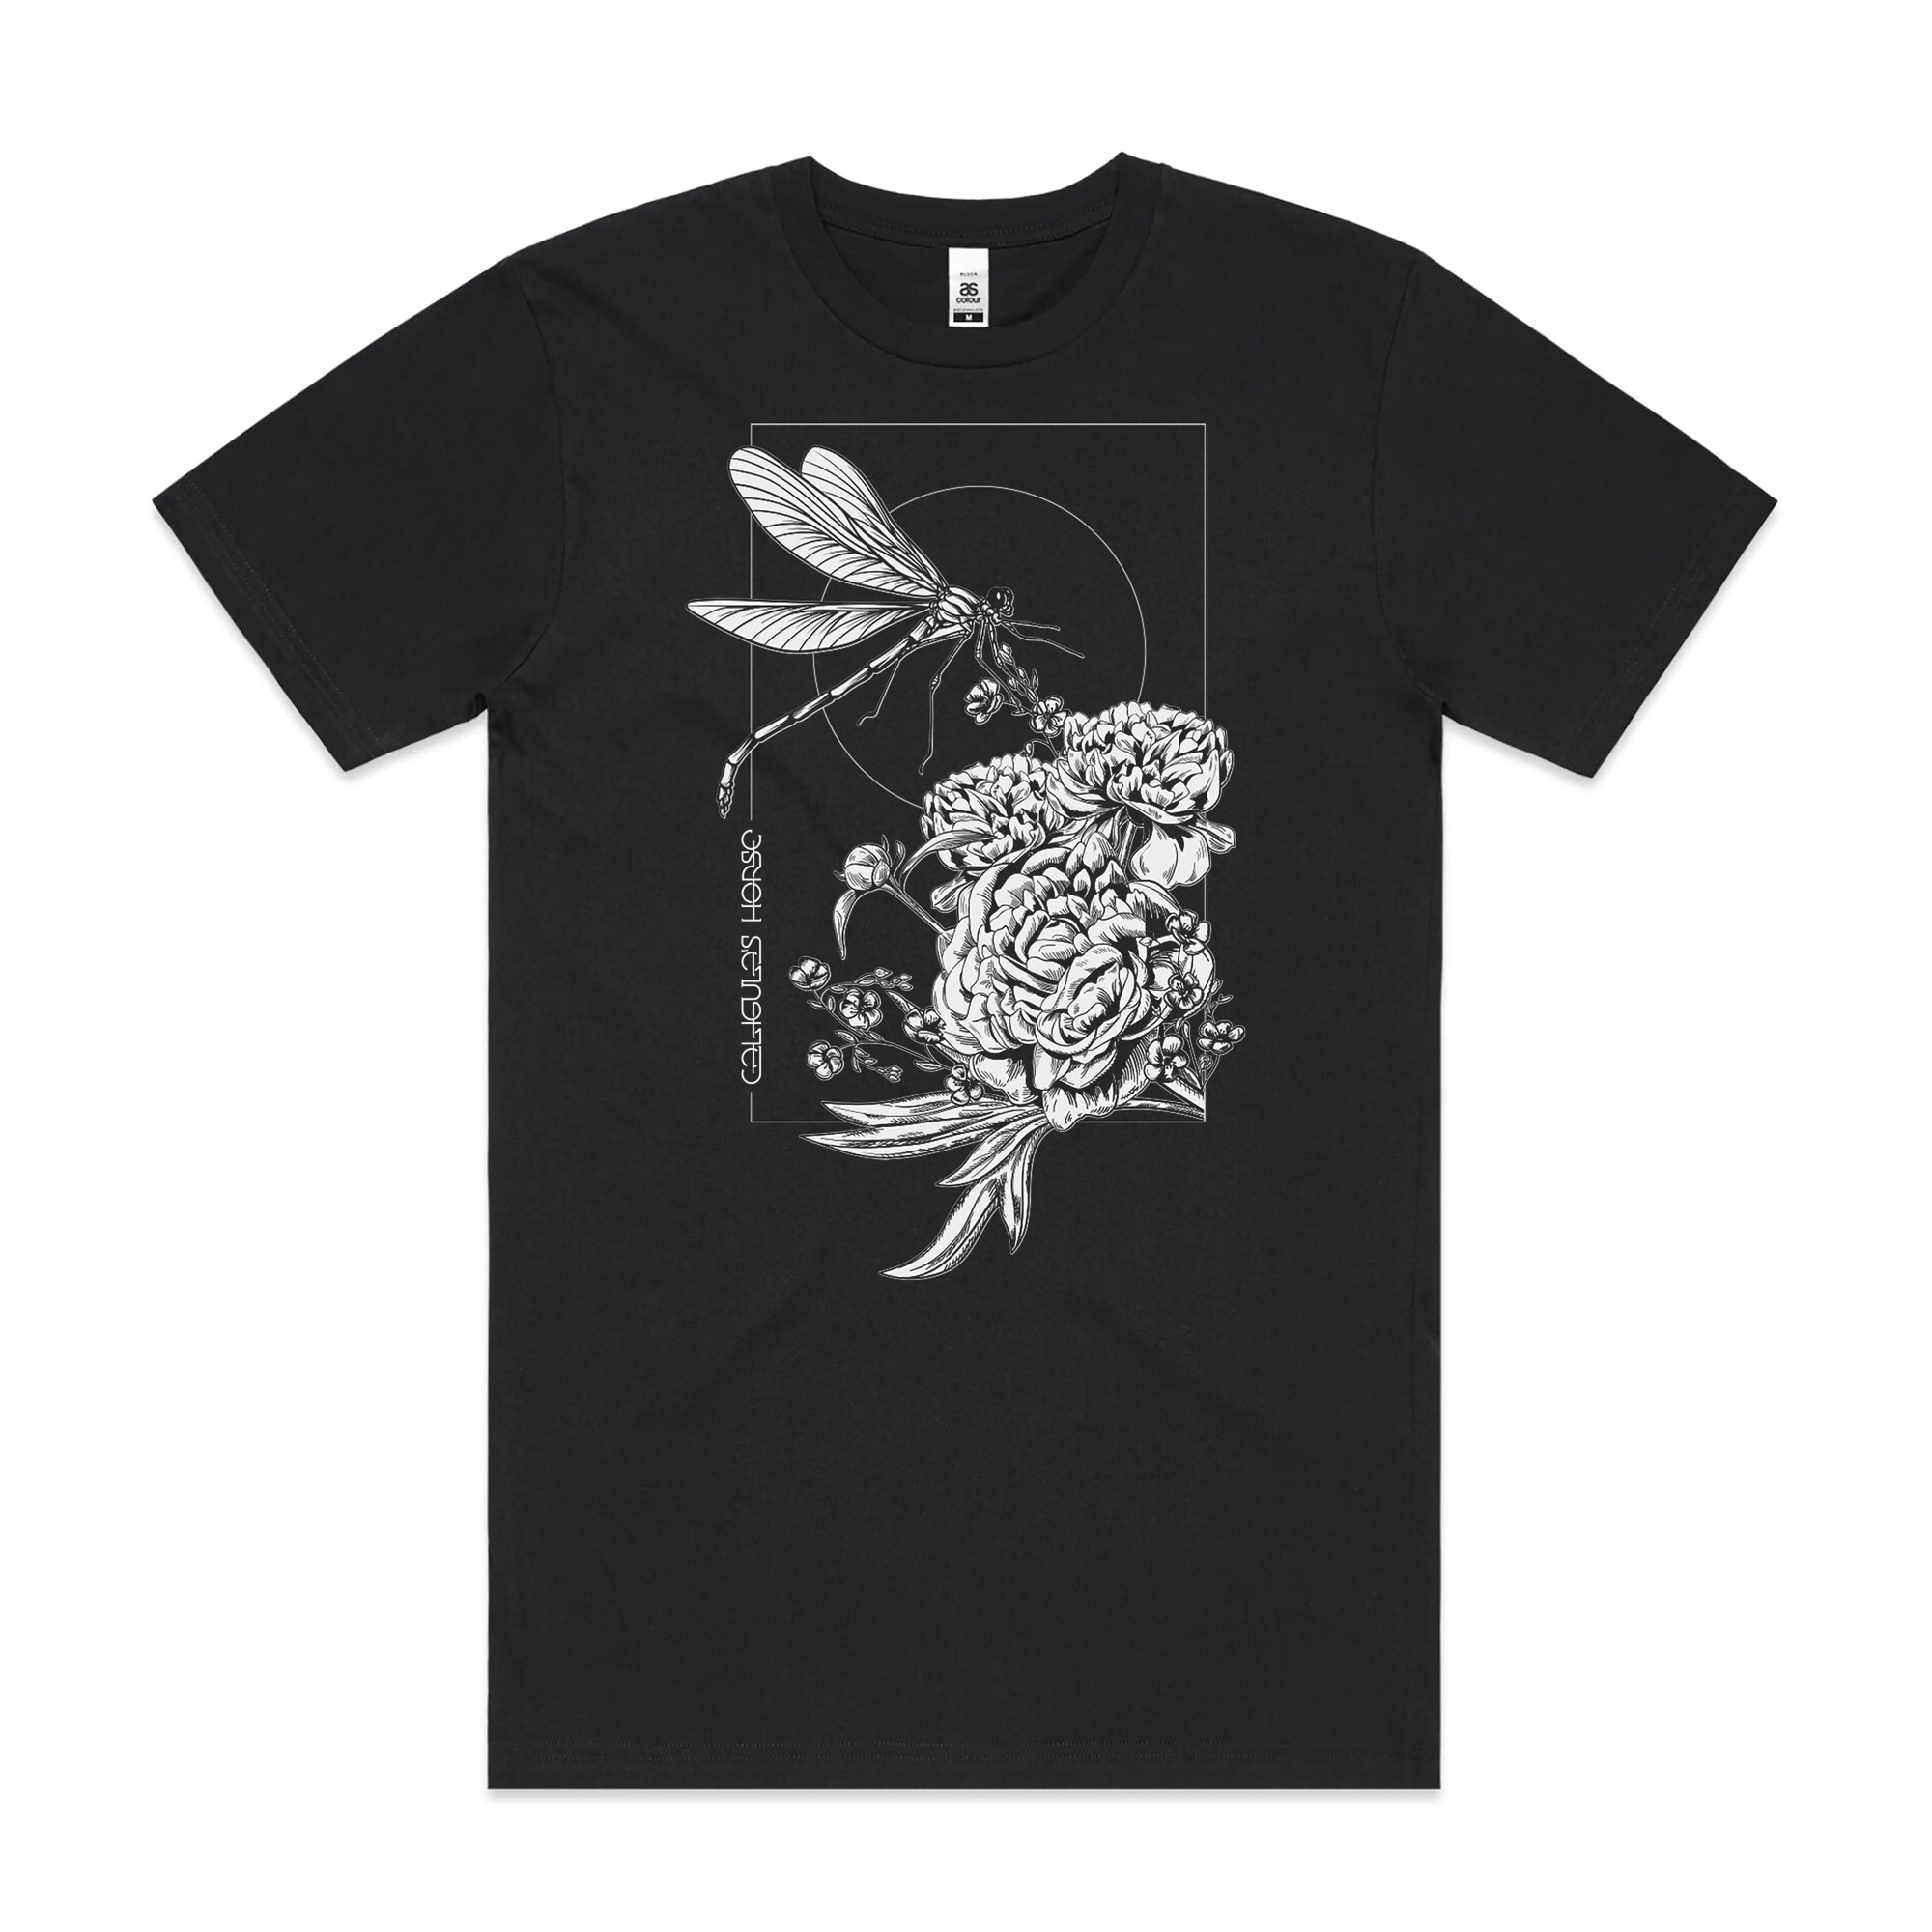 CALIGULA'S HORSE // DRAGONFLY BLACK T-SHIRT - Wild Thing Records